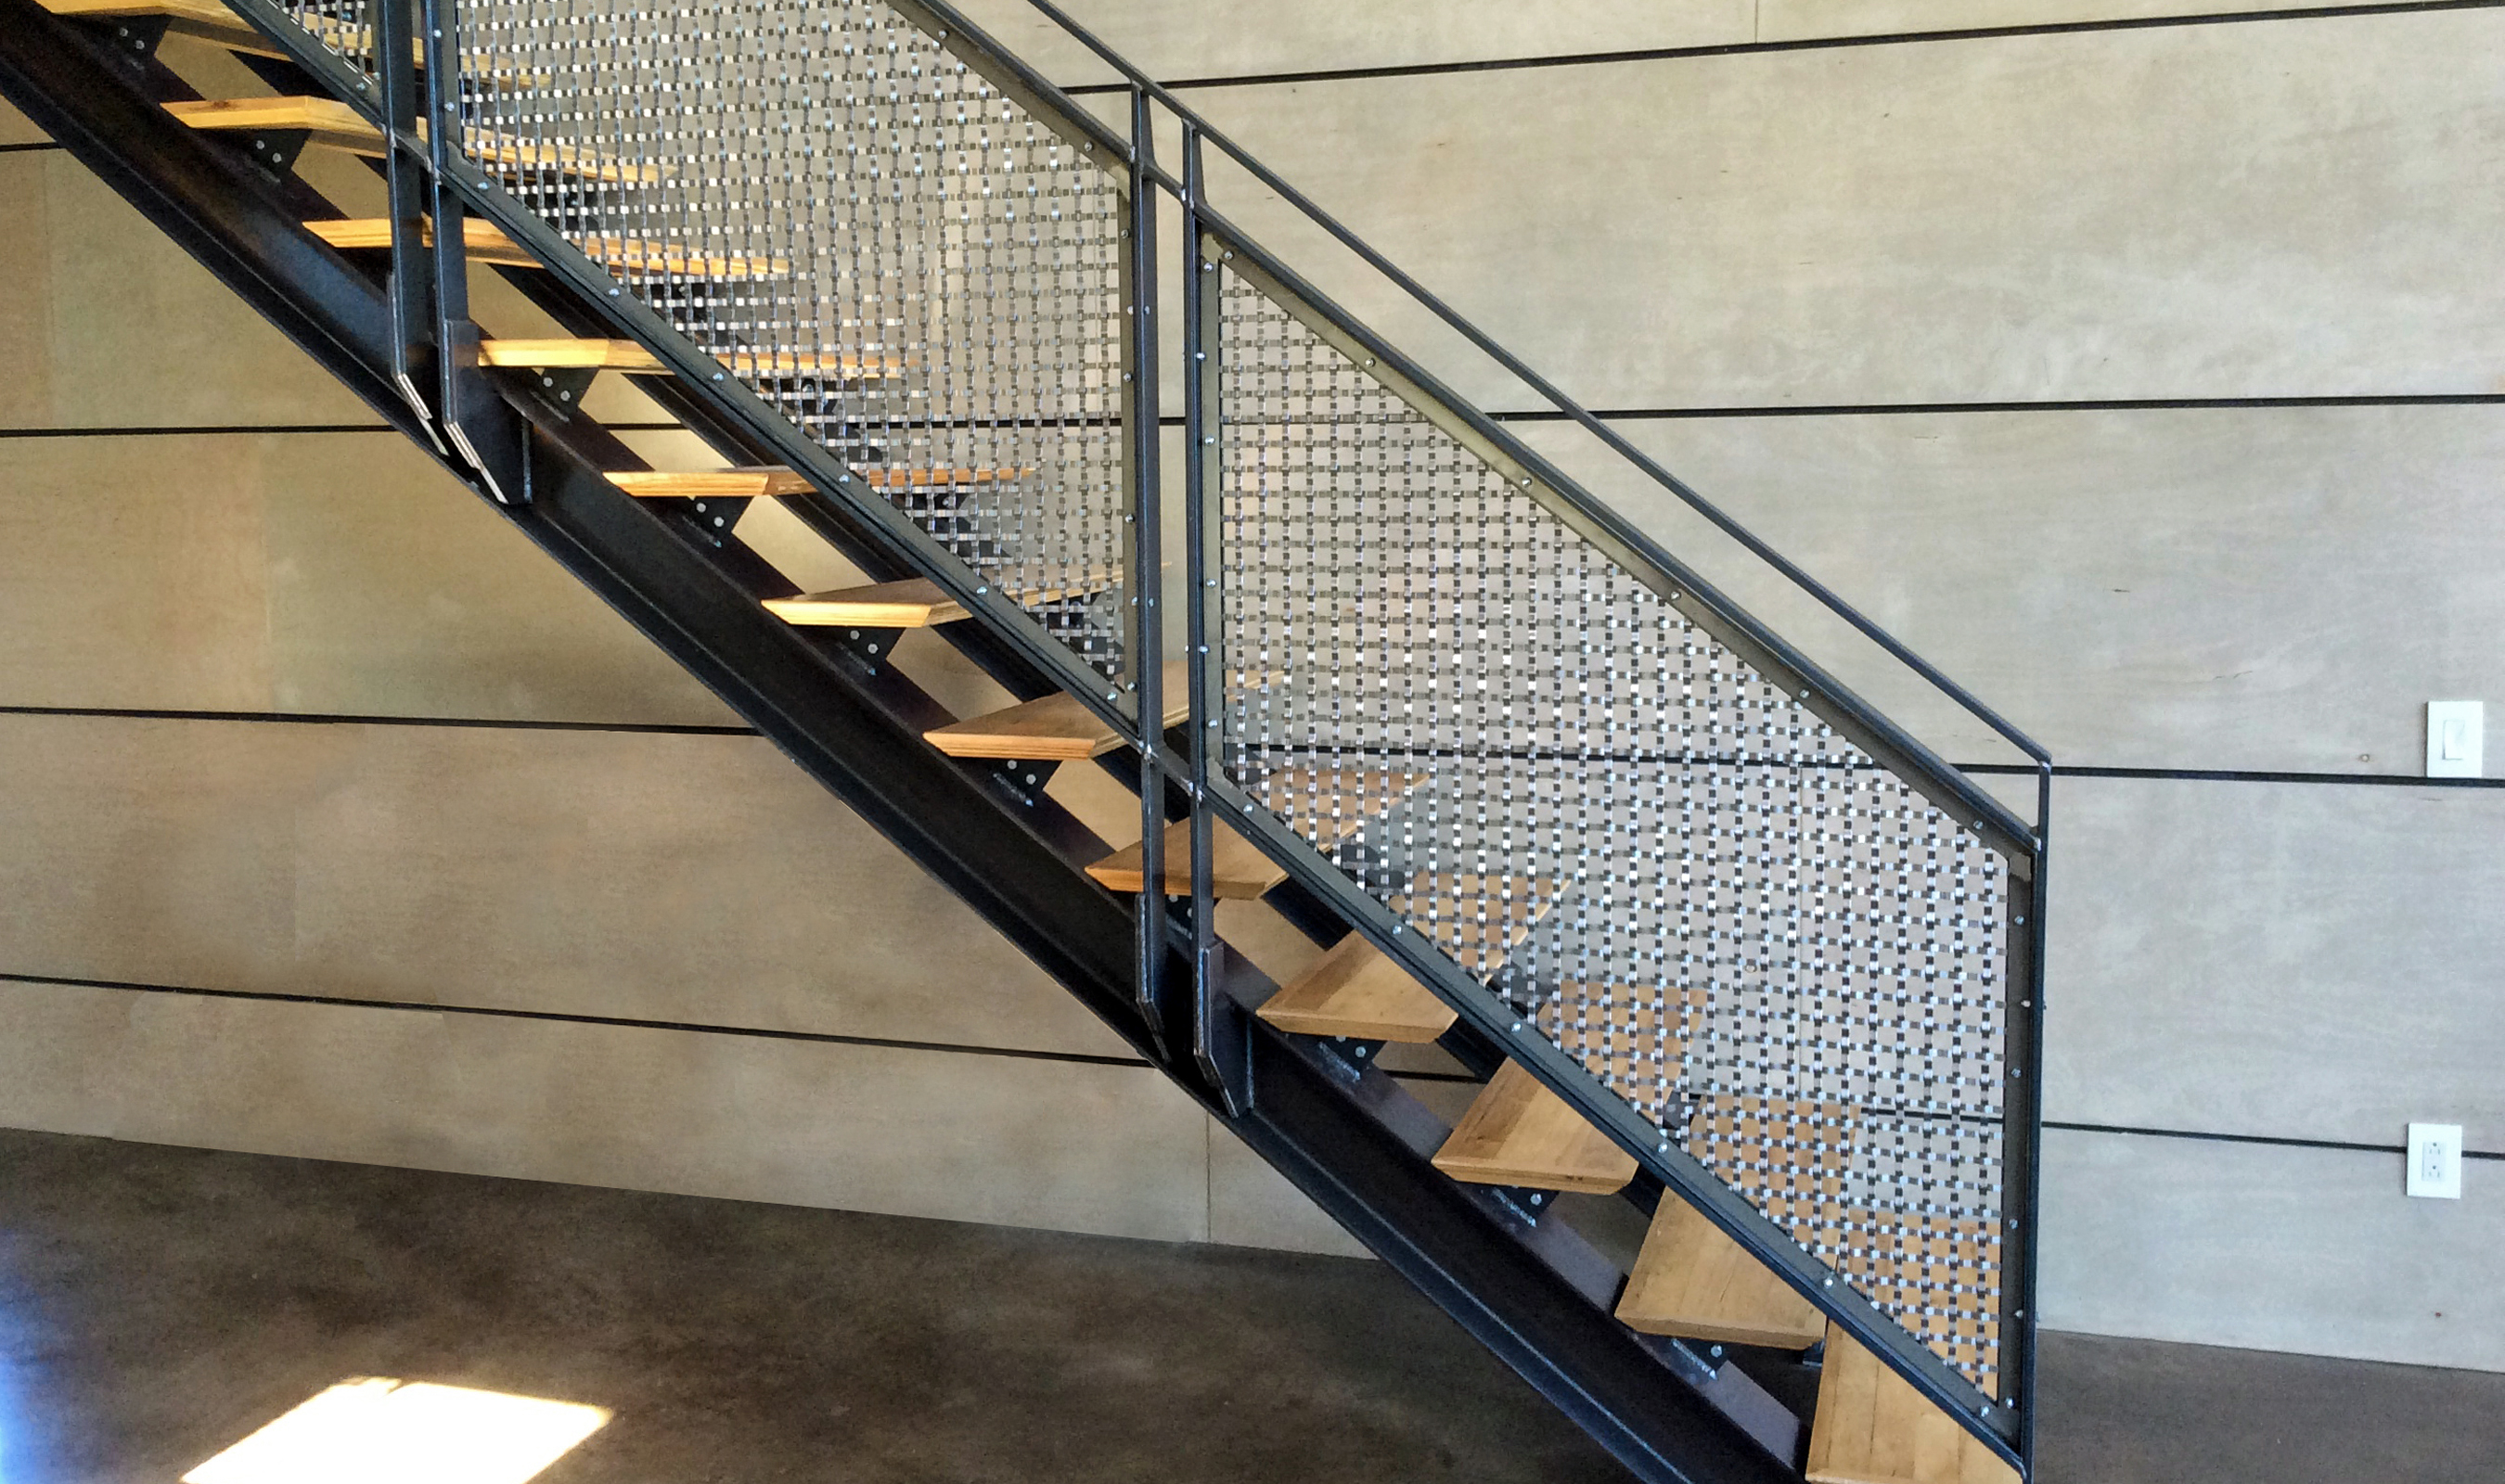 Stainless steel S-15 flat wire mesh pattern was framed using and angle and bar frame assembly.